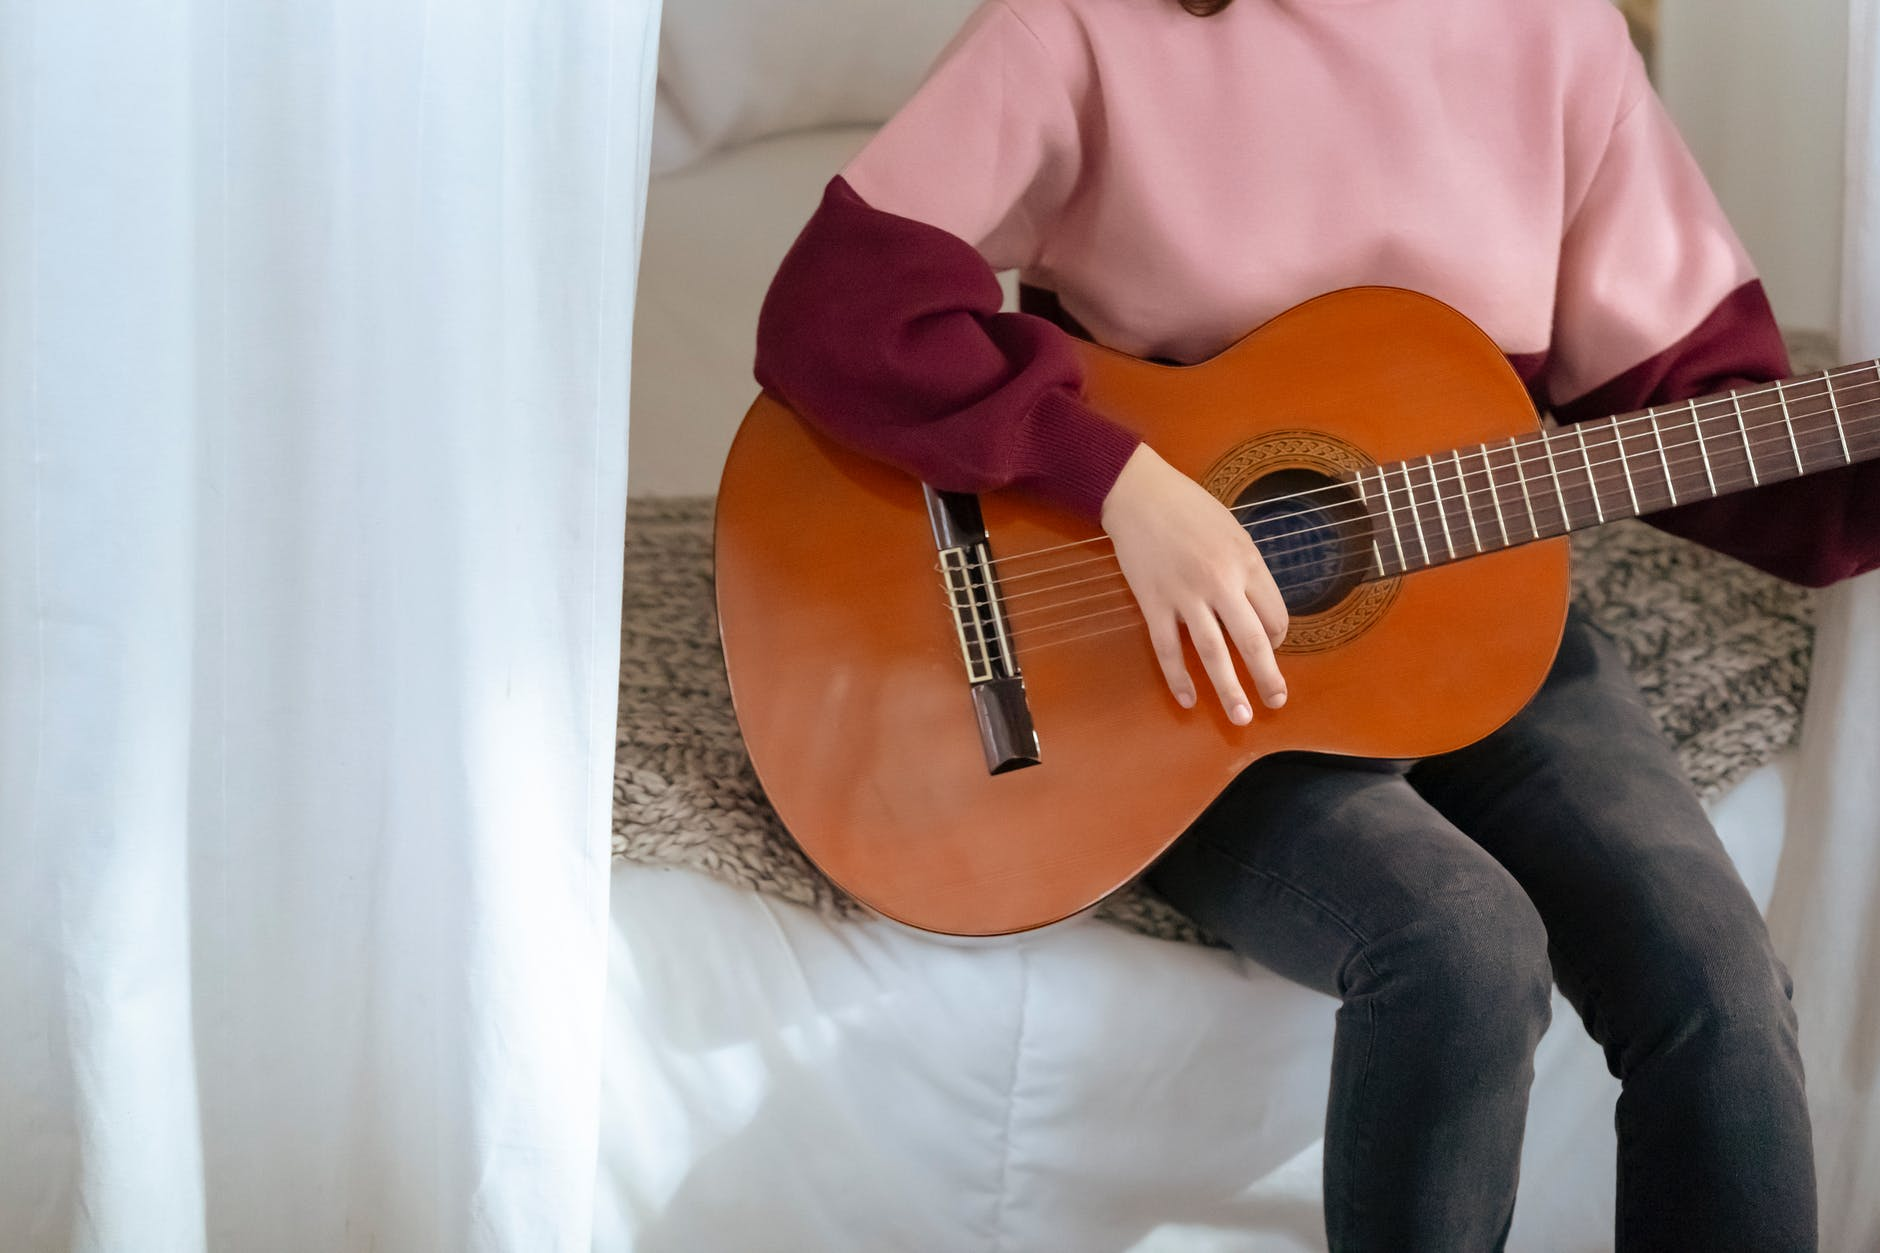 crop woman playing guitar on bed